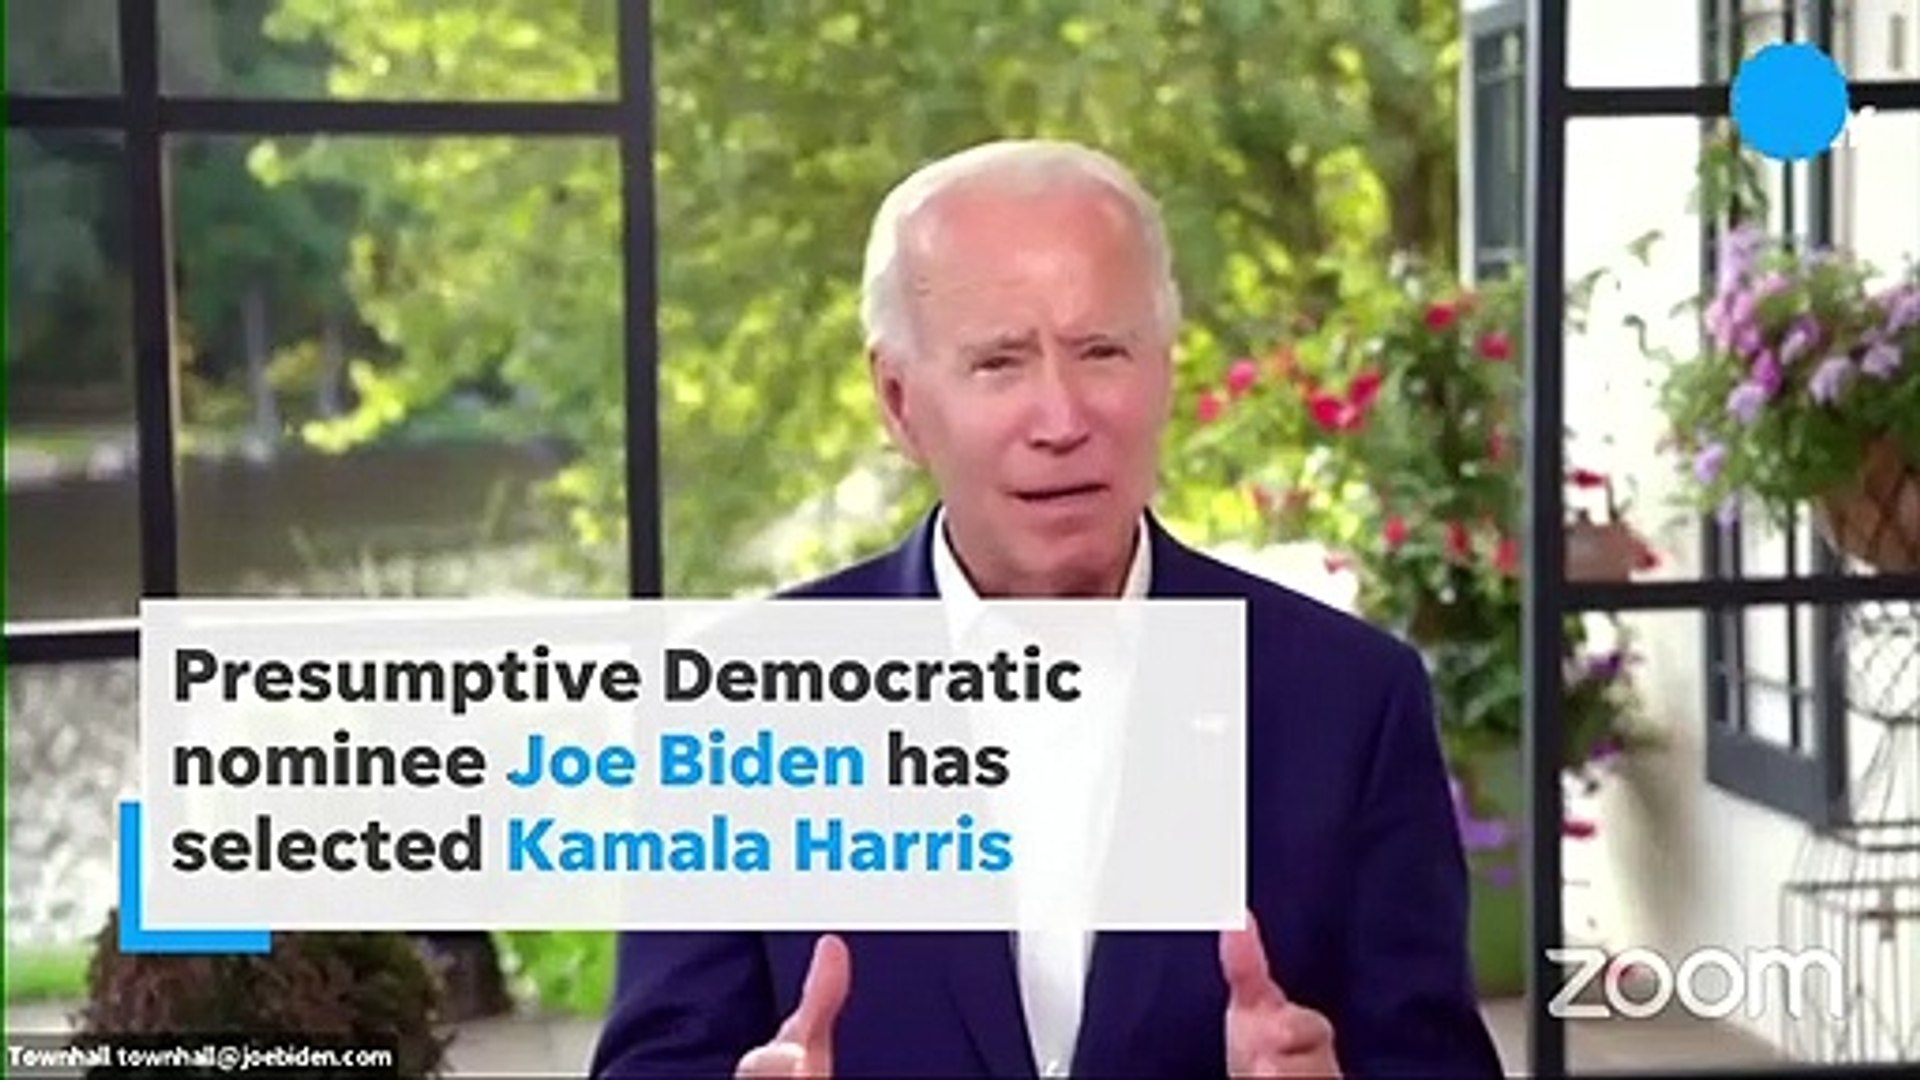 Joe Biden Picks Kamala Harris As Vp Running Mate For 2020 Election Video Dailymotion